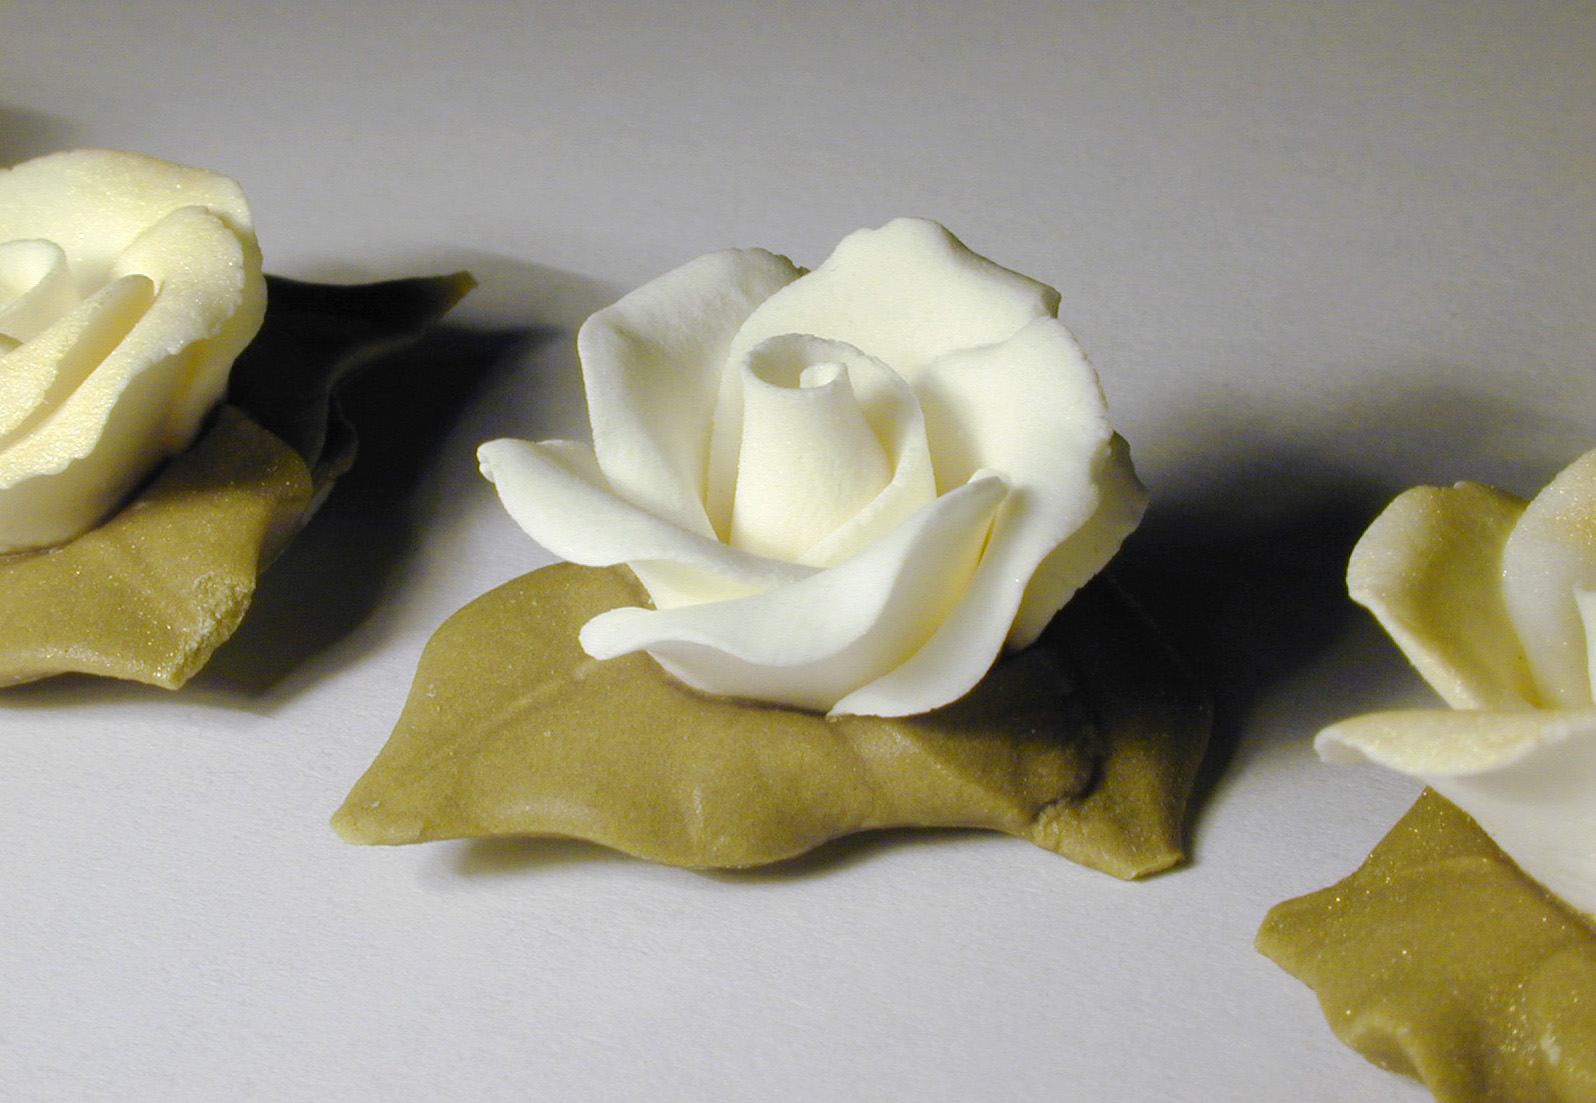 Free image of row of white icing roses with leaves mightylinksfo